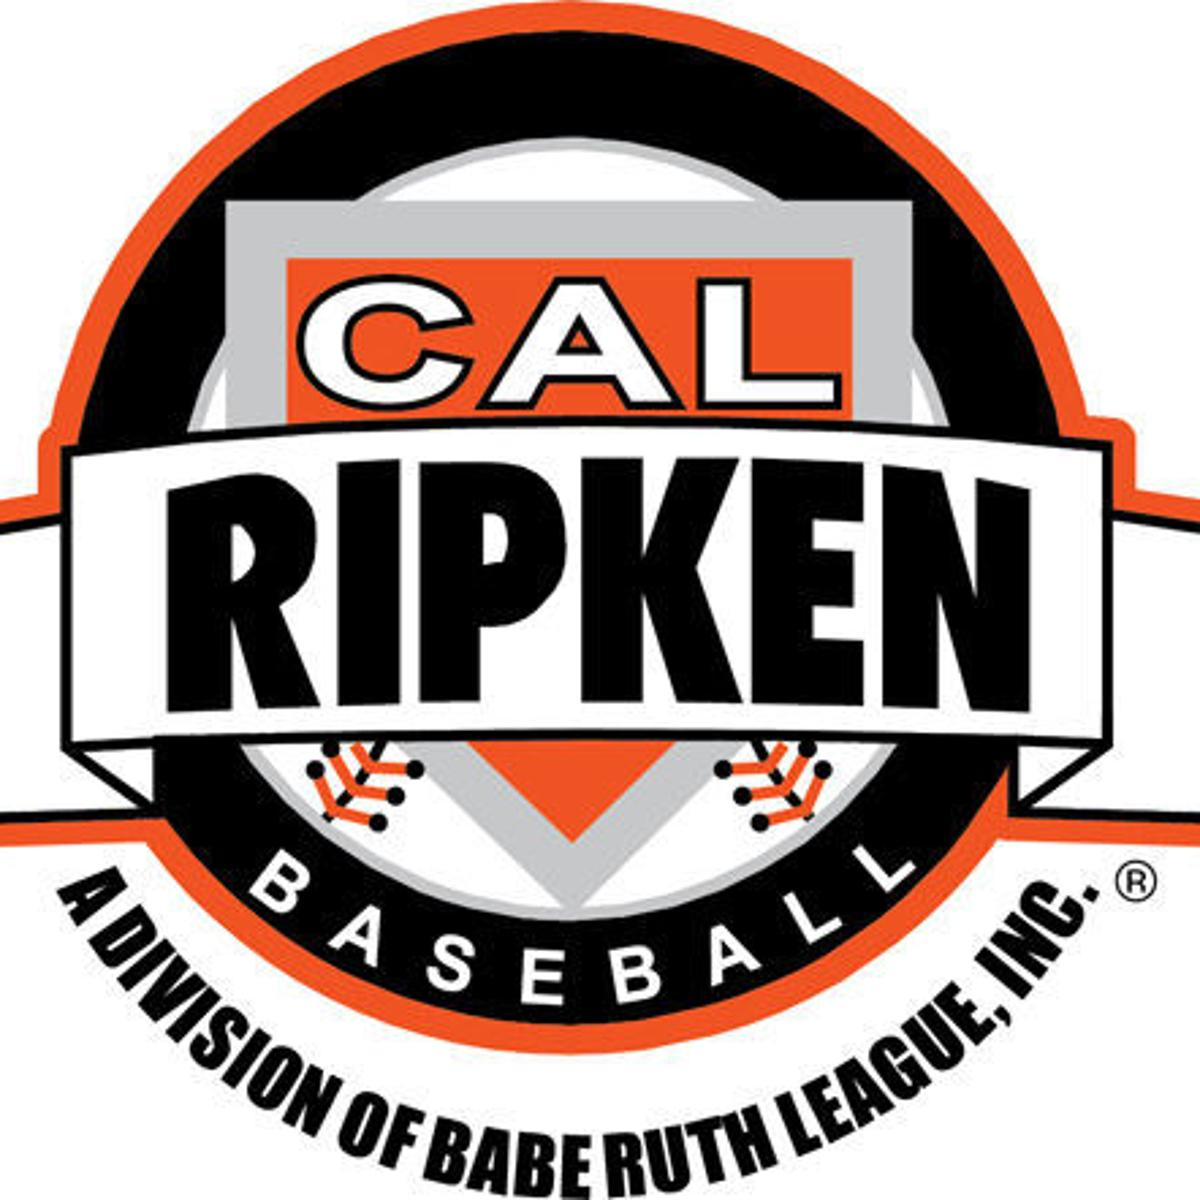 2019 Little League/Cal Ripken tournaments results for July 13-14